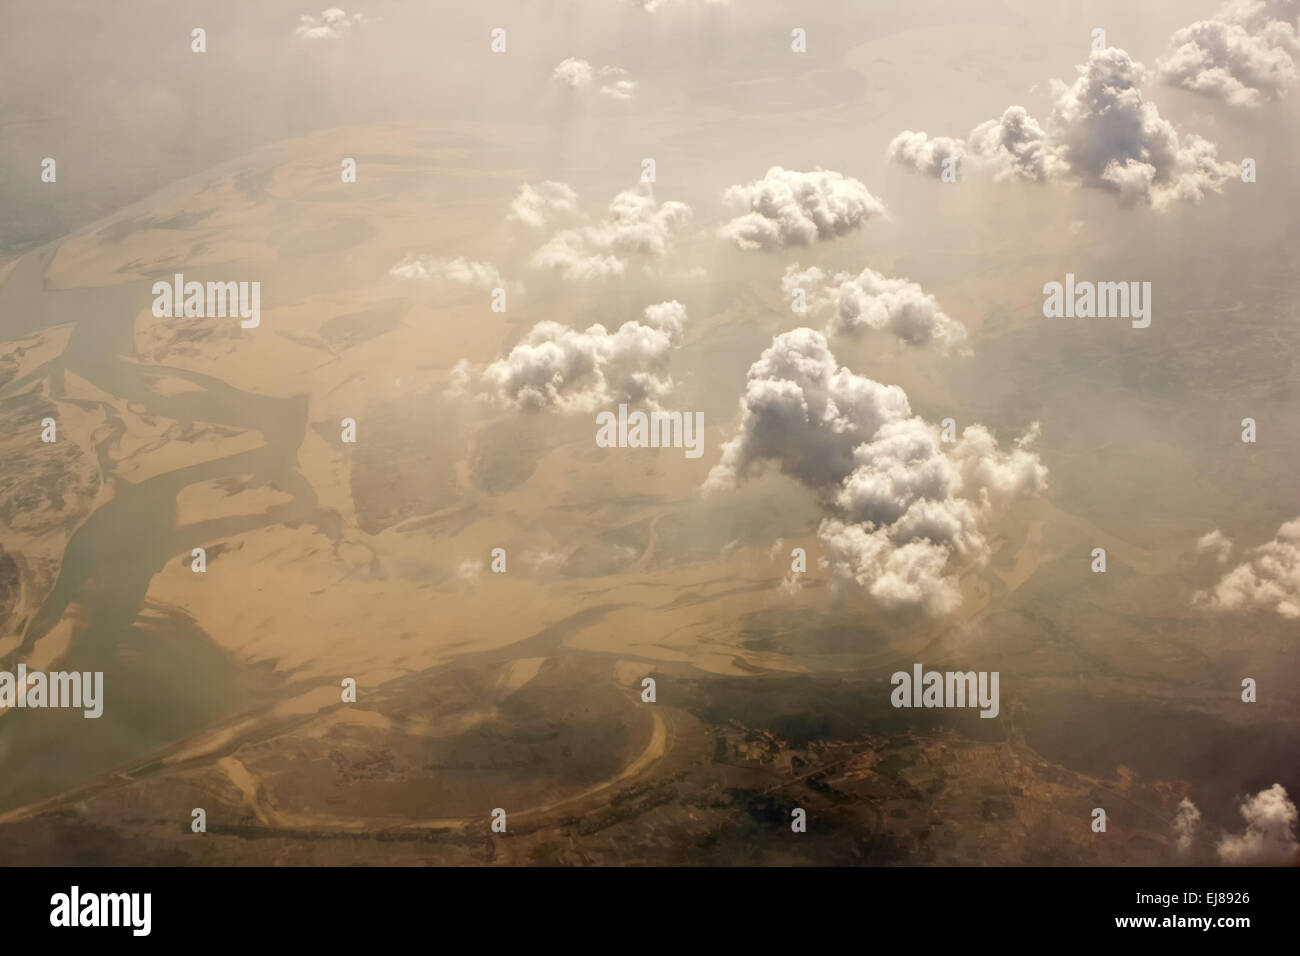 Aerial skyscape showing interesting  clouds & land in golden light. - Stock Image